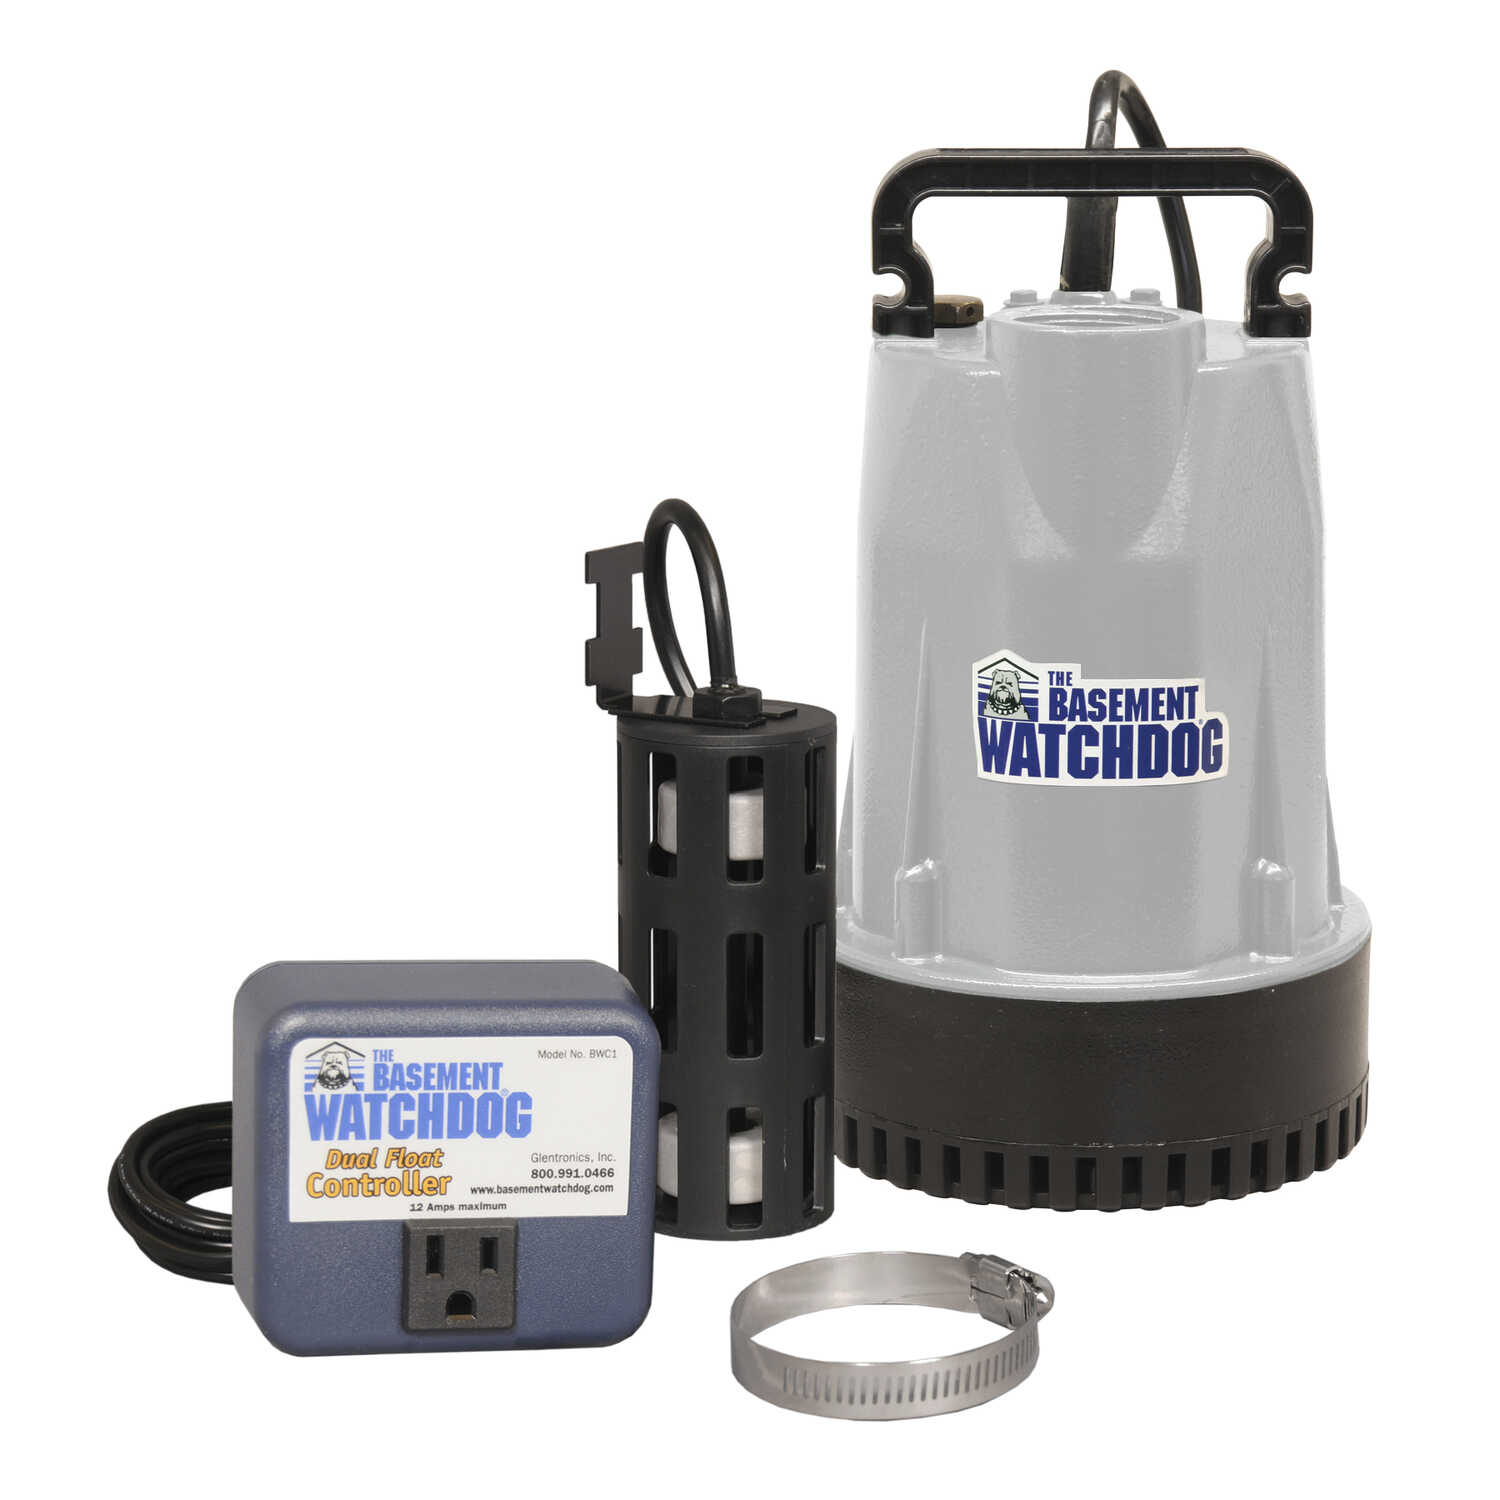 Basement Watchdog  1/3 hp 3720 gph Aluminium  Submersible Sump Pump